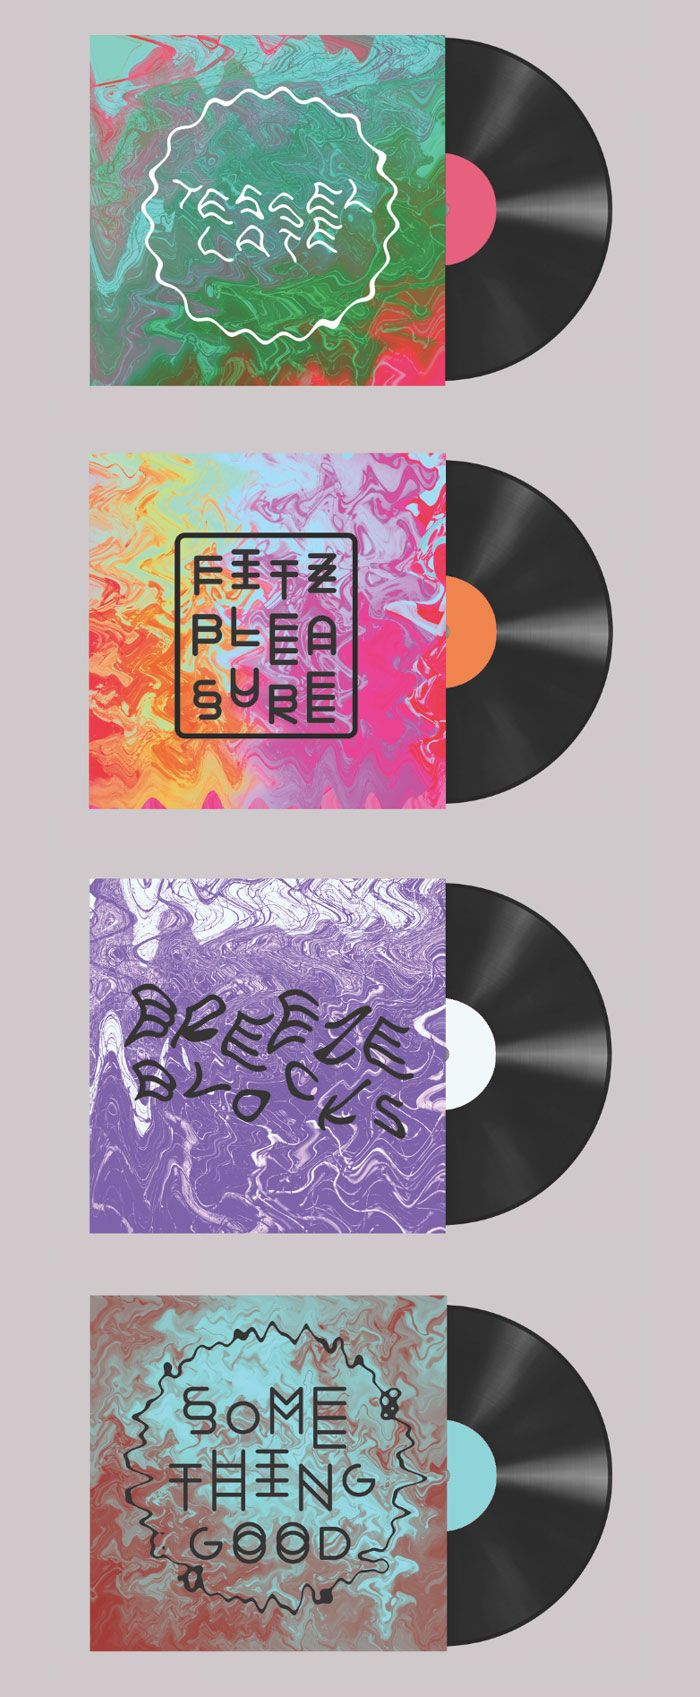 Eve Warren / Record sleeve design concepts